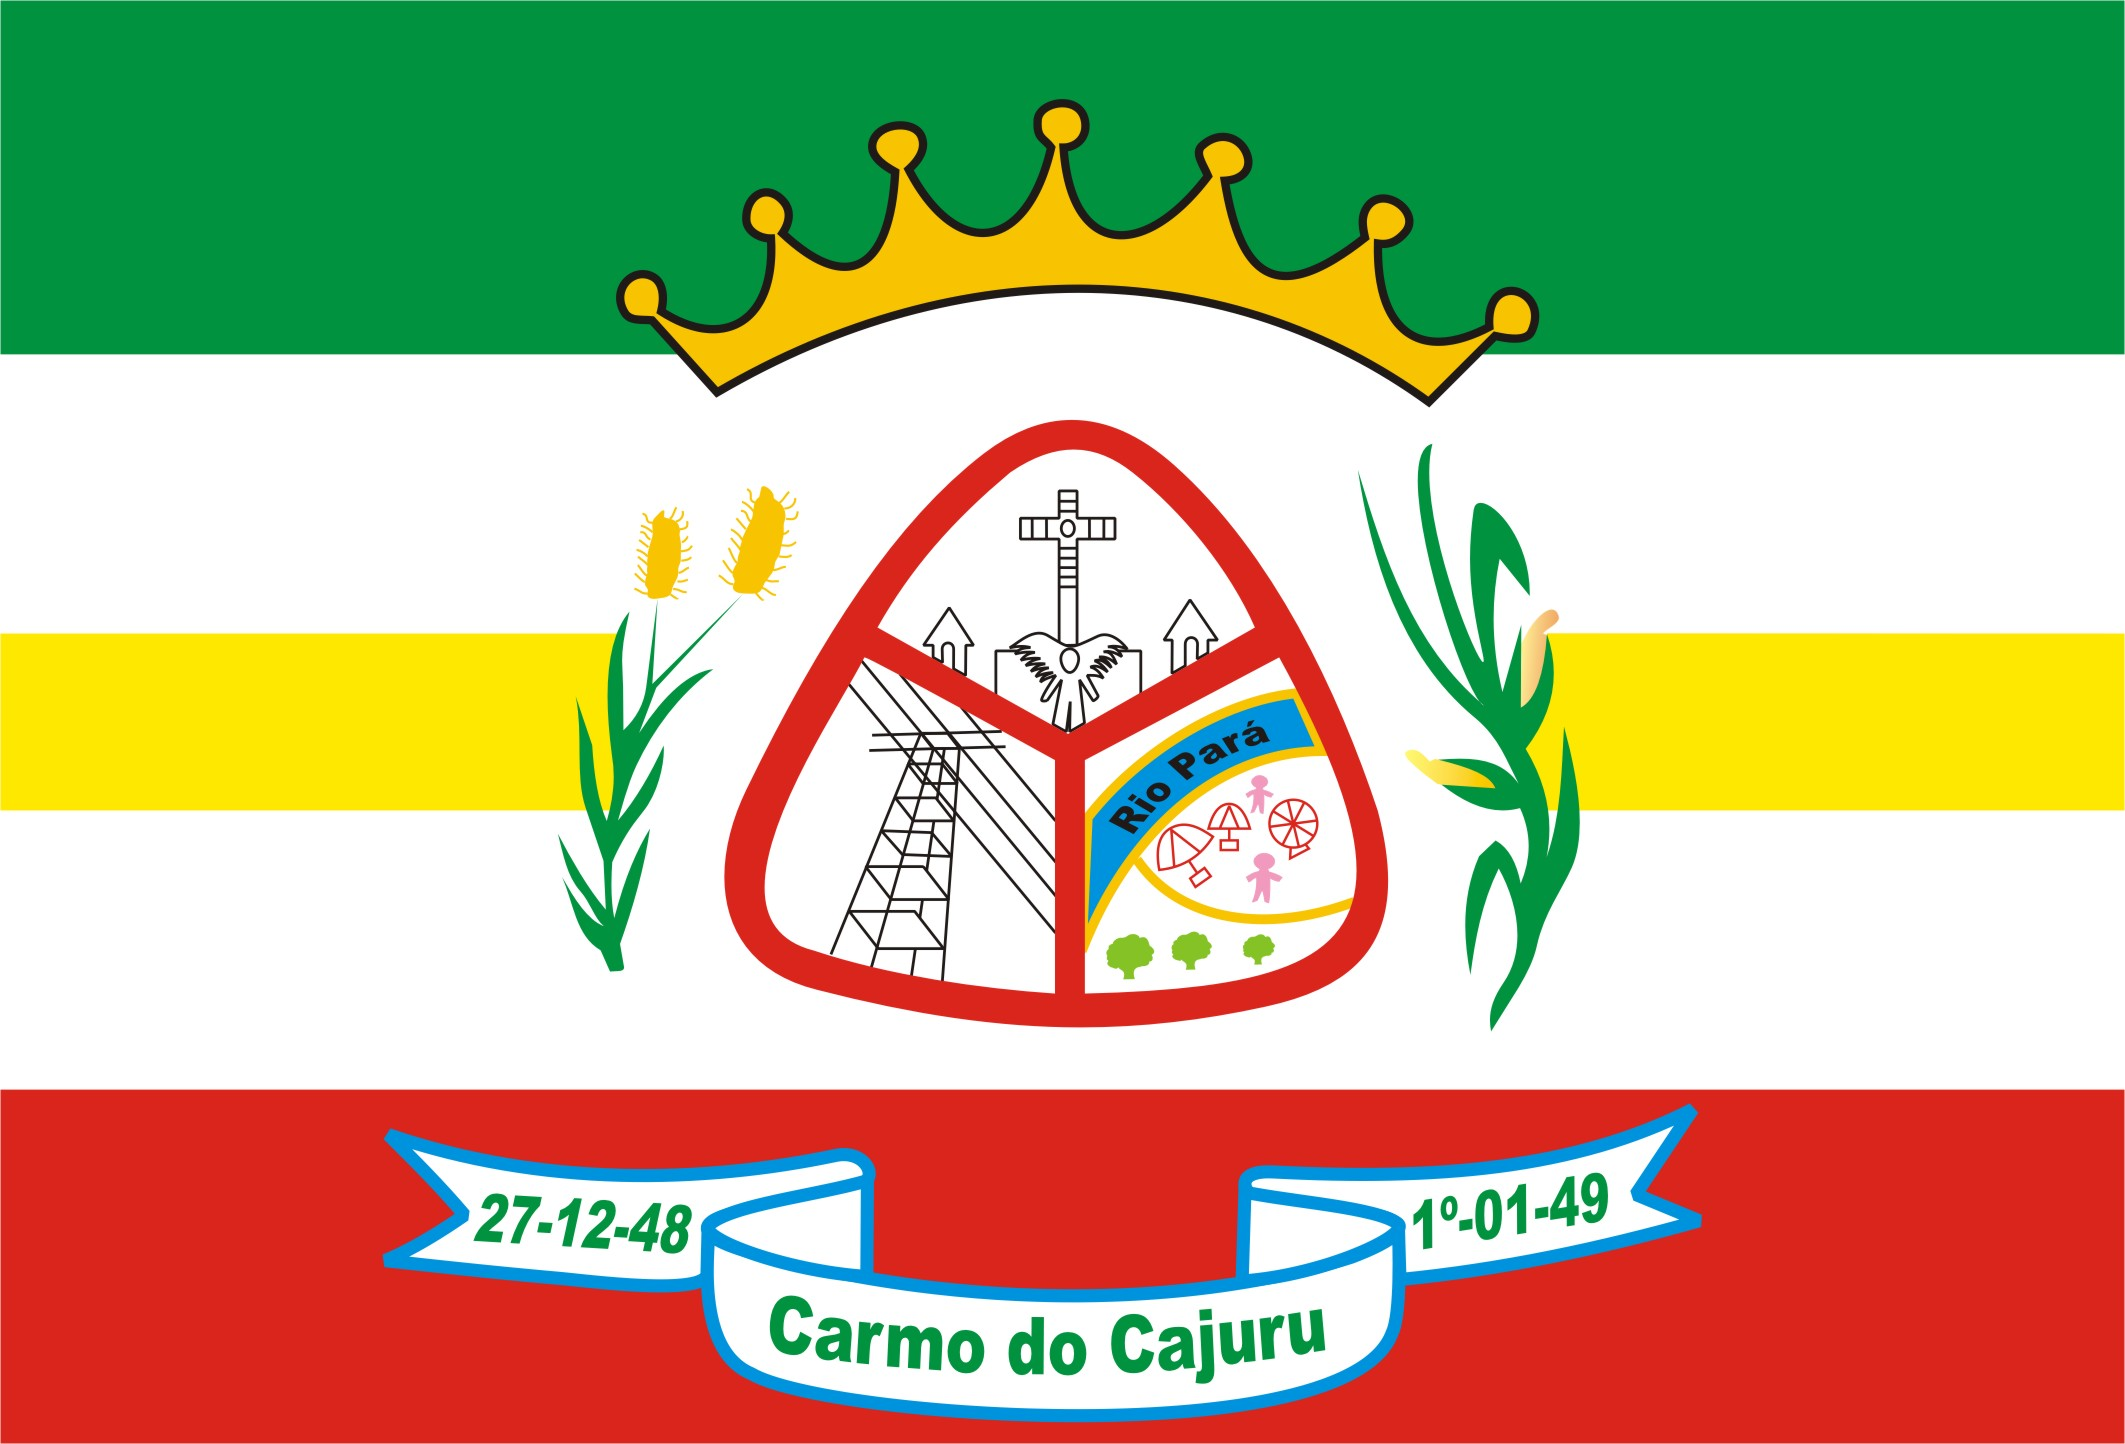 Bandera Carmo do Cajuru